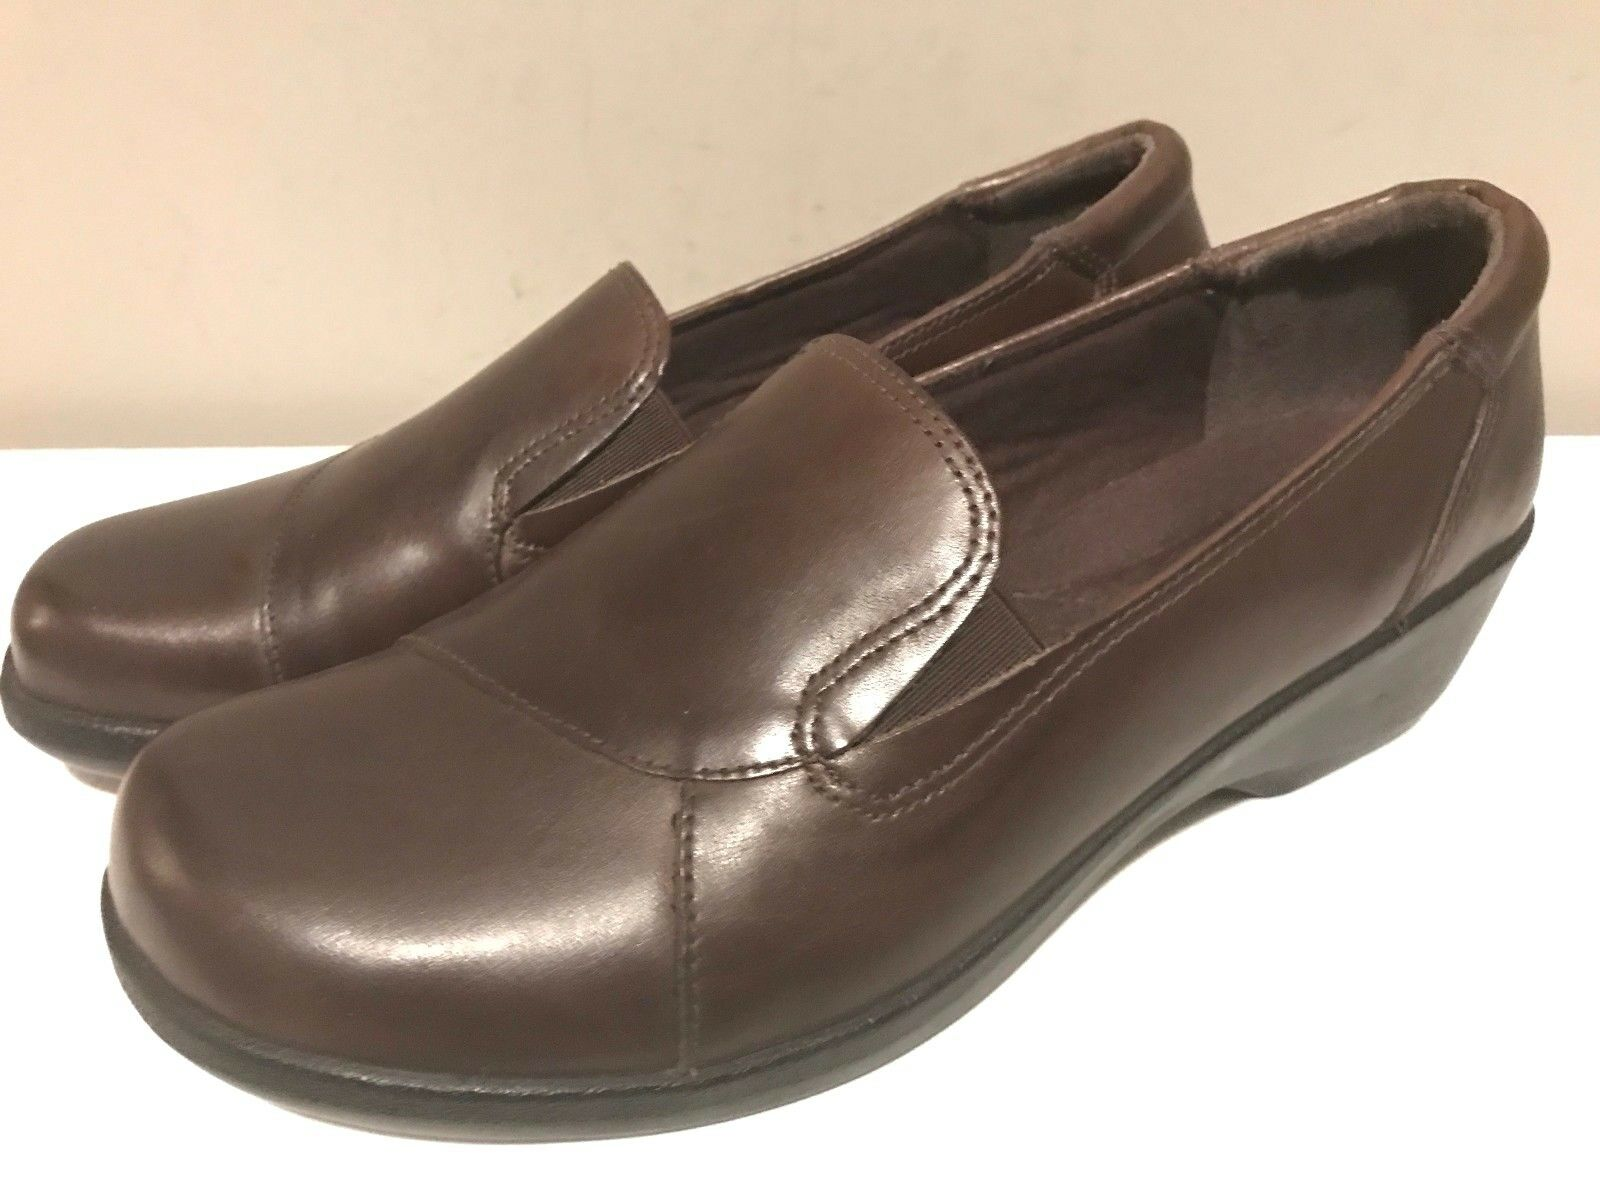 CLARKS Collection Shoe Womens 10 M Brown Leather Slip On Casual Soft Cushion